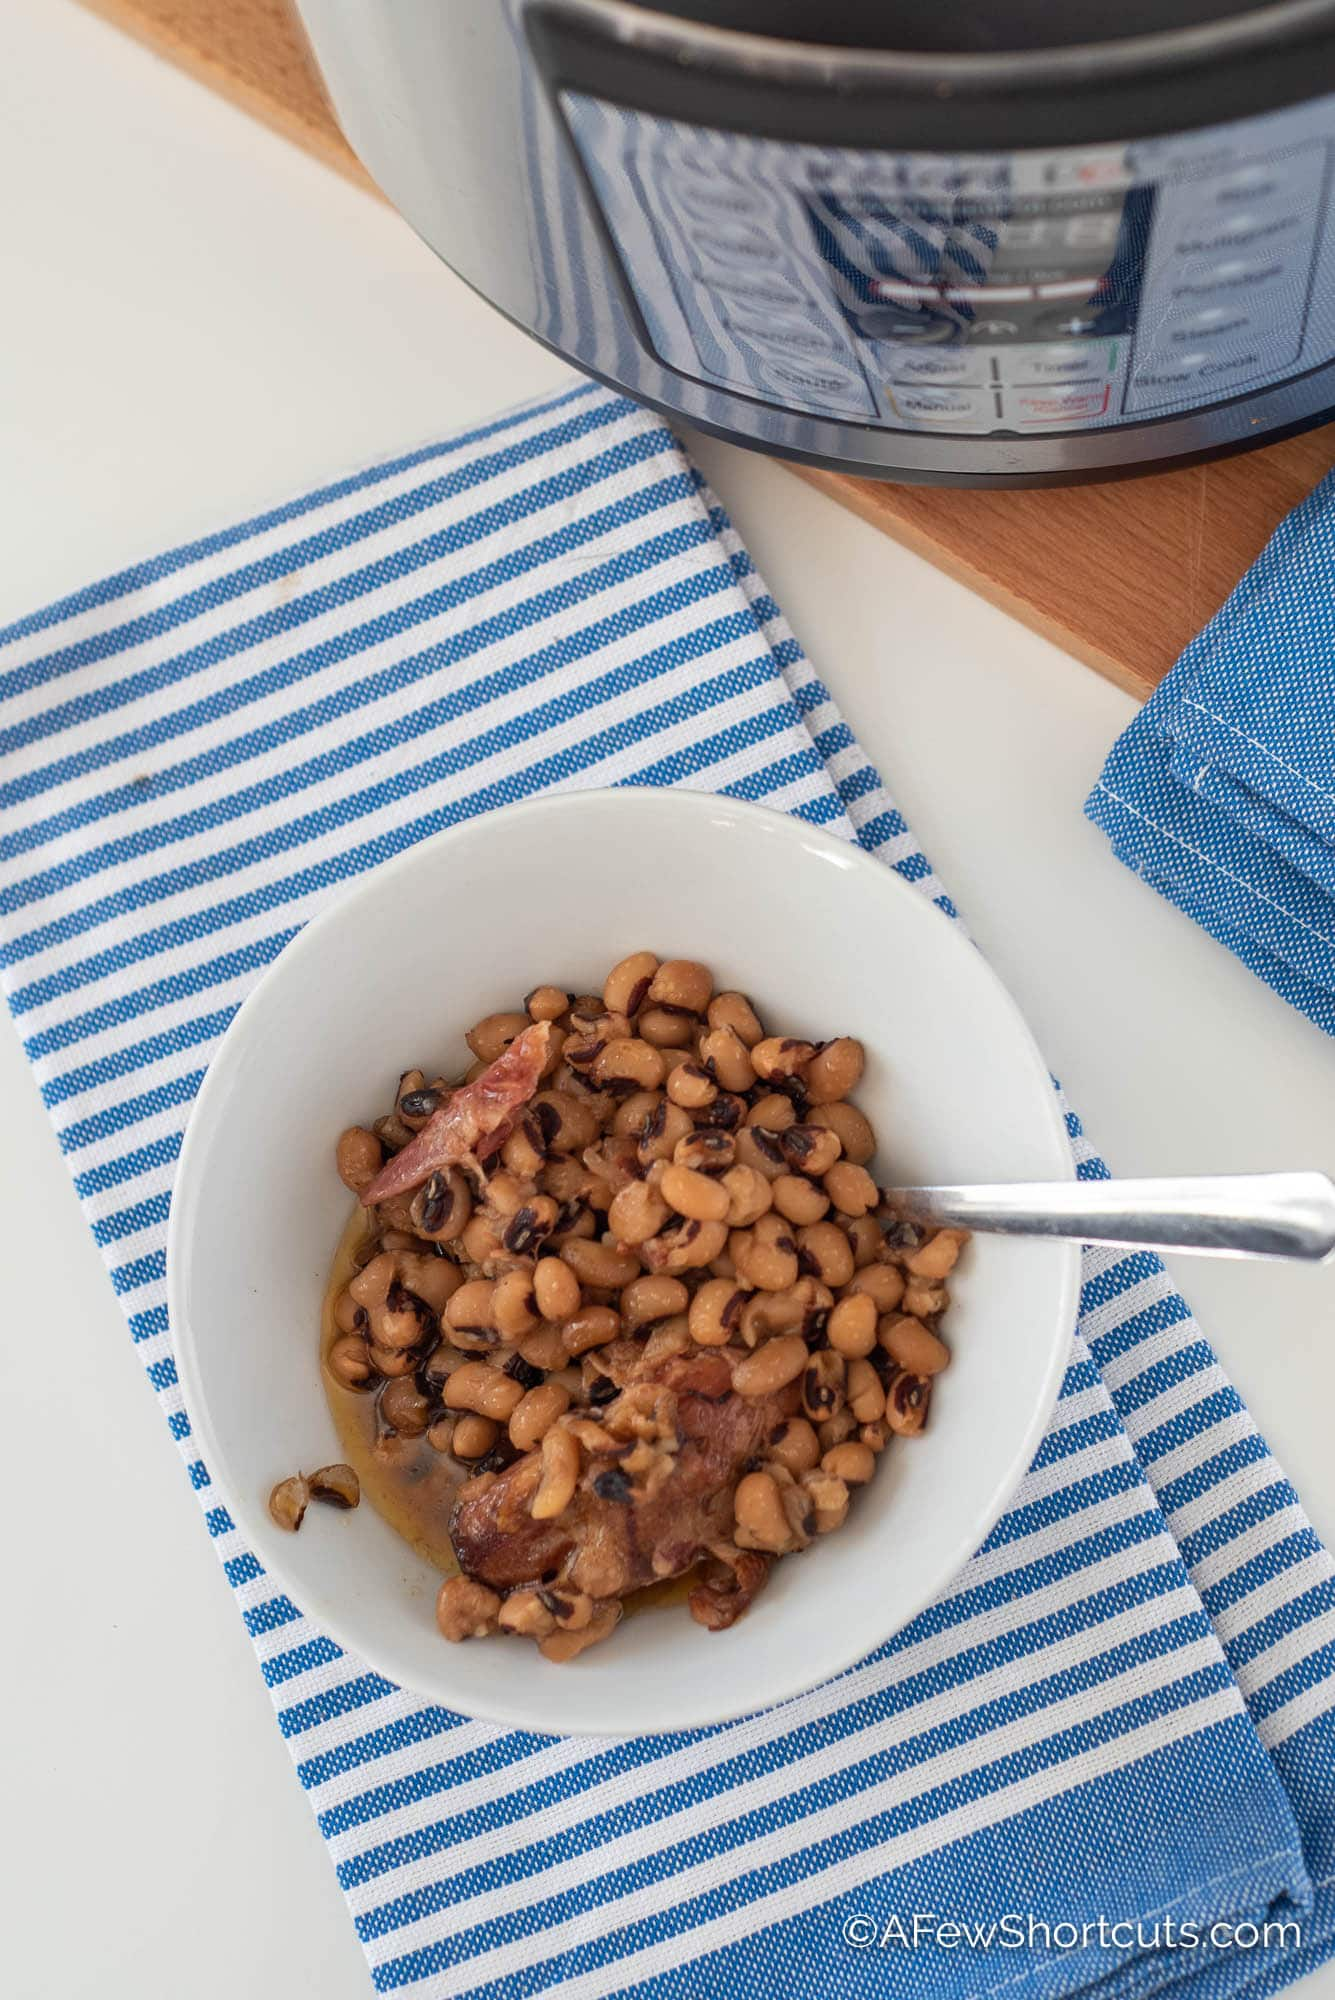 Black Eyed Peas in bowl with blue striped towel under it.